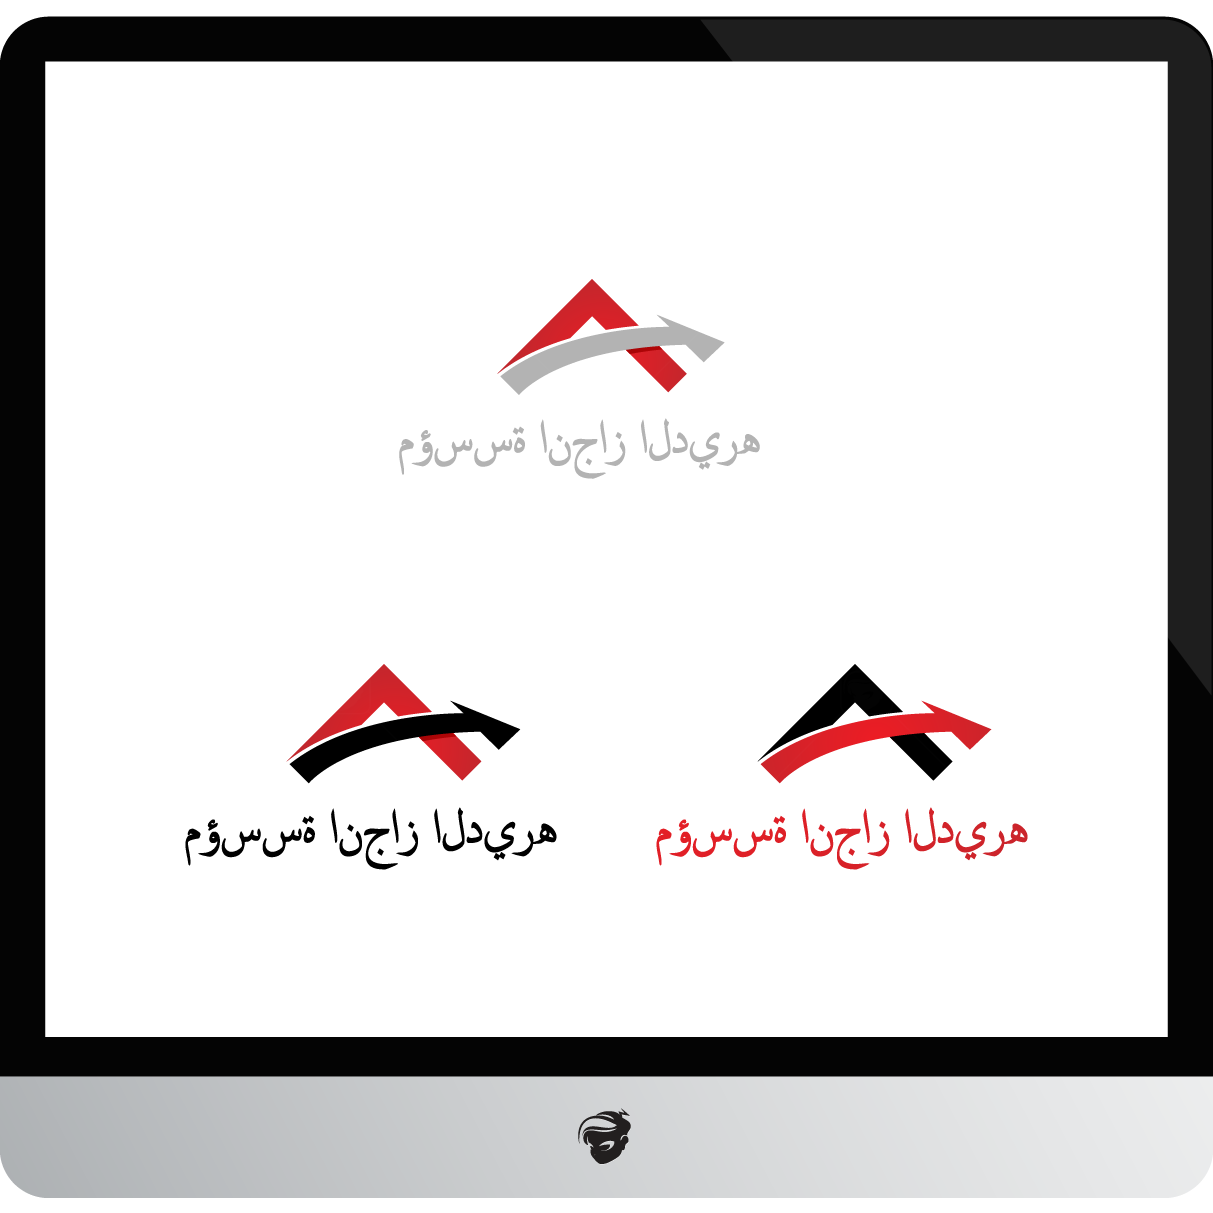 Logo Design by zesthar - Entry No. 67 in the Logo Design Contest Fun Logo Design for Injaz aldeera.